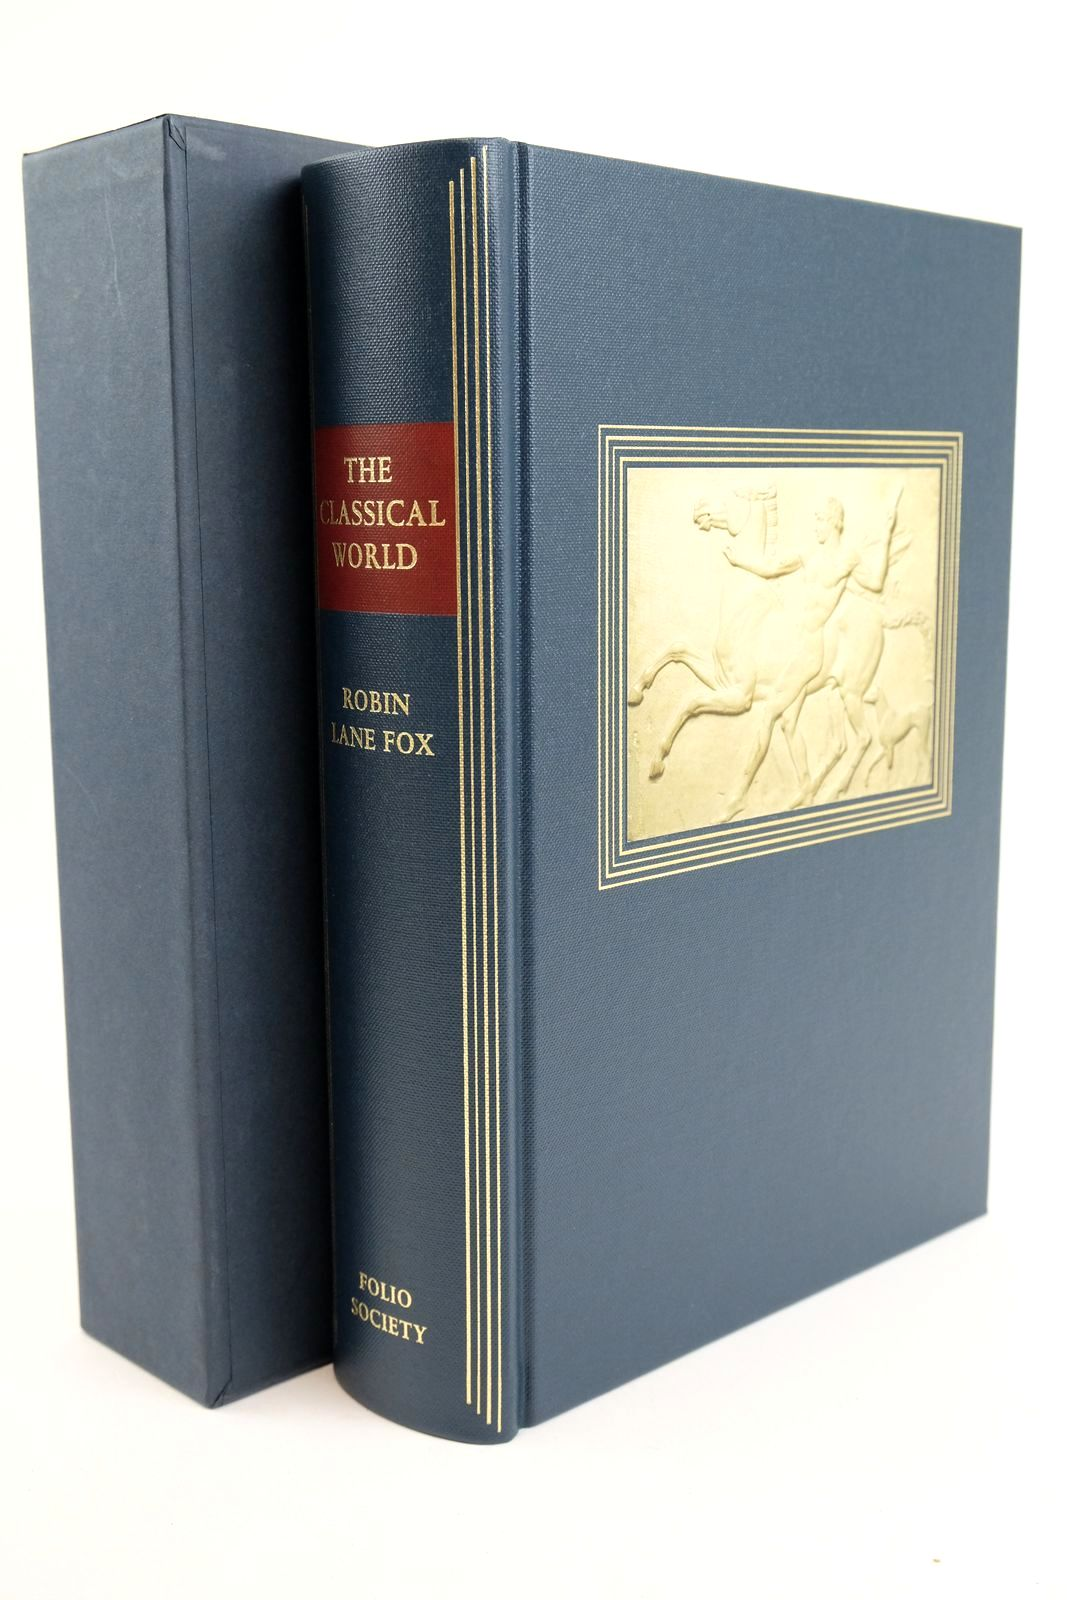 Photo of THE CLASSICAL WORLD written by Fox, Robin Lane published by Folio Society (STOCK CODE: 1318898)  for sale by Stella & Rose's Books